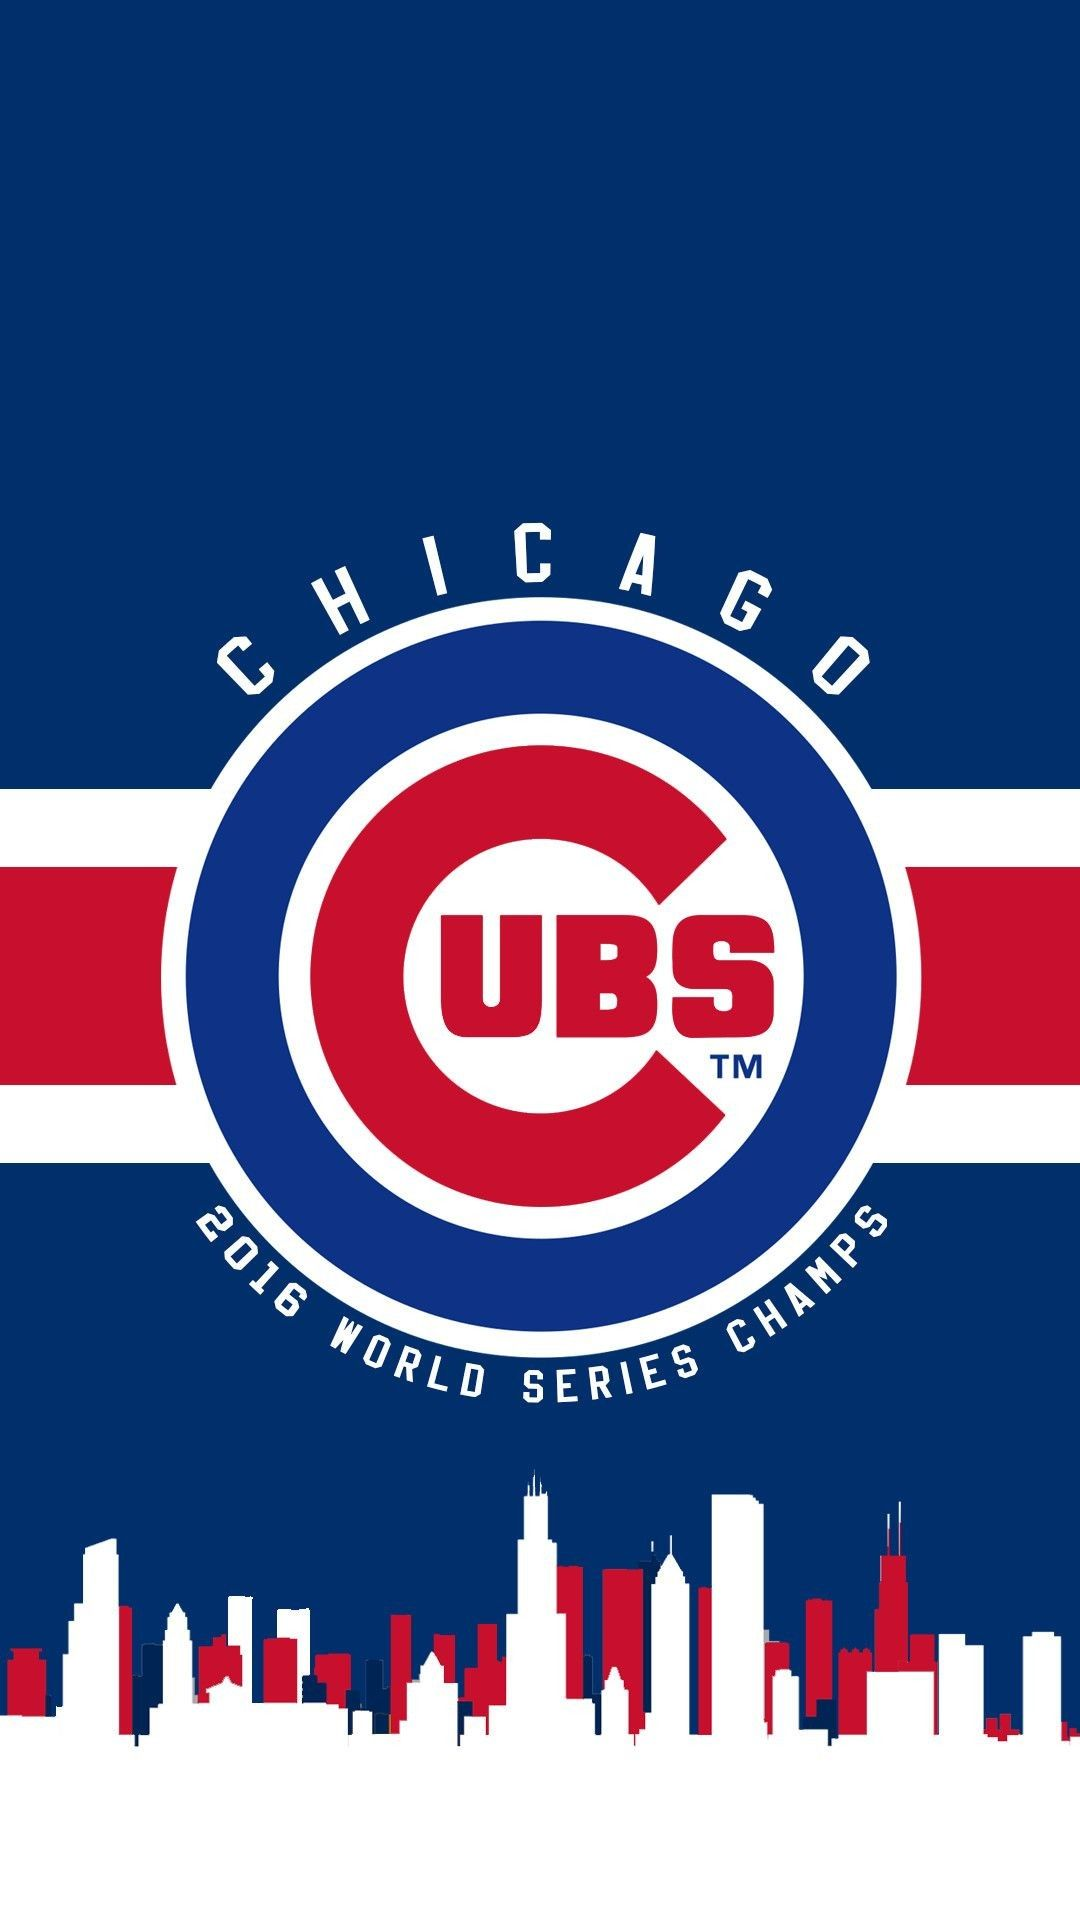 World Series Cubs Picture Chicago Cubs Wallpaper Cubs Wallpaper Chicago Cubs